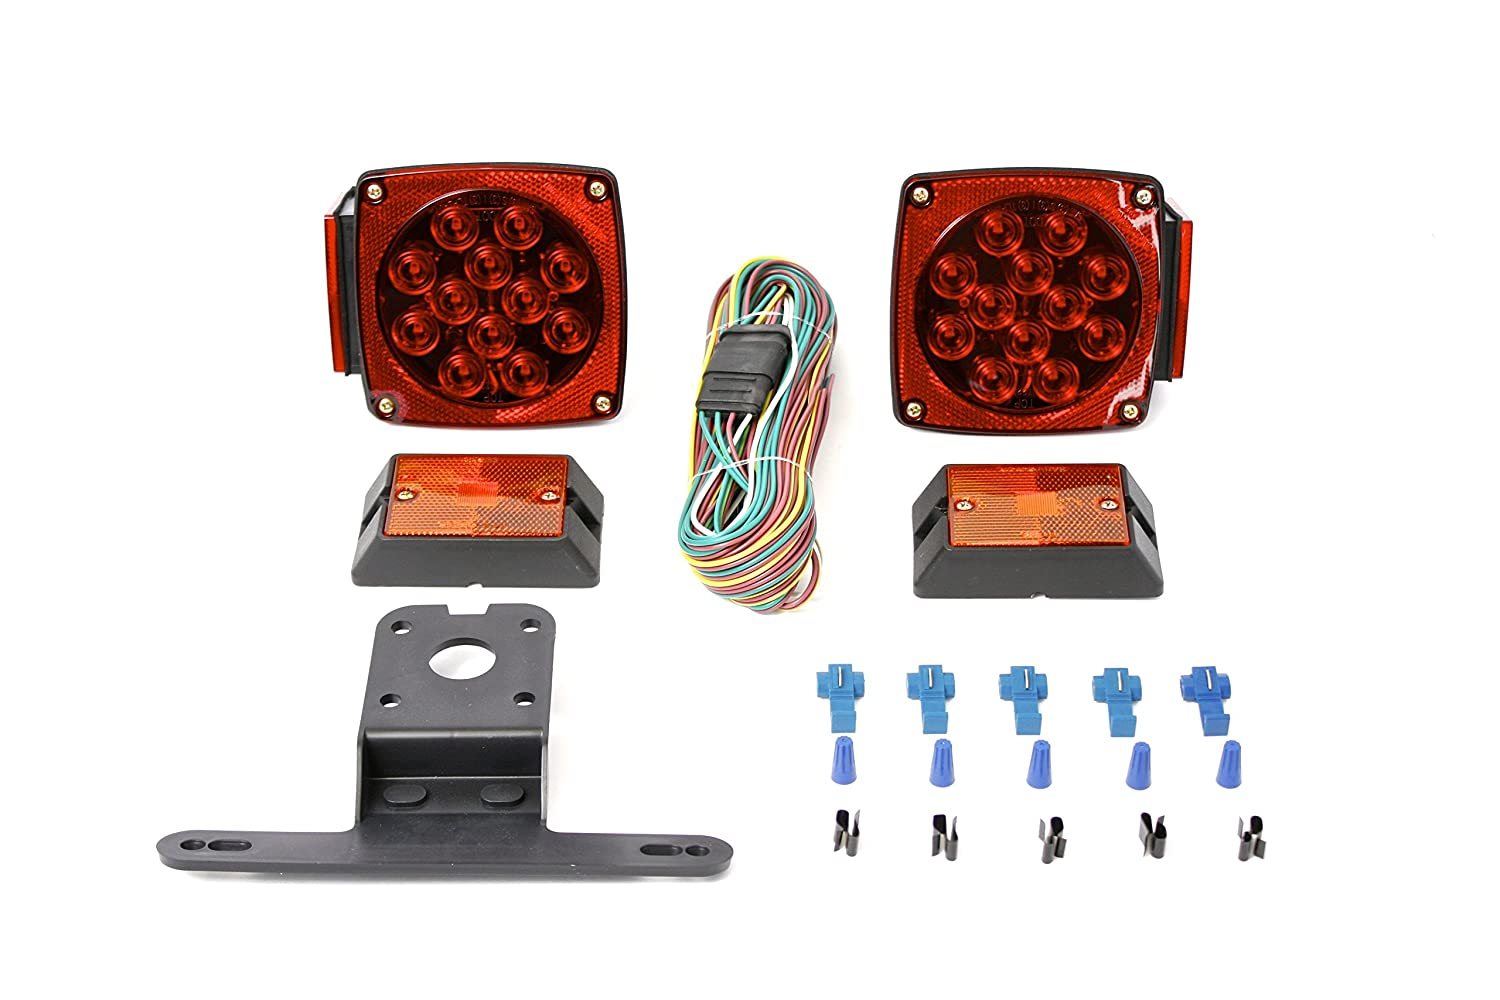 Maxxhaul 70205 12v All Led Submersible Trailer Light Kit Wiring Color Code Diagram Automotive